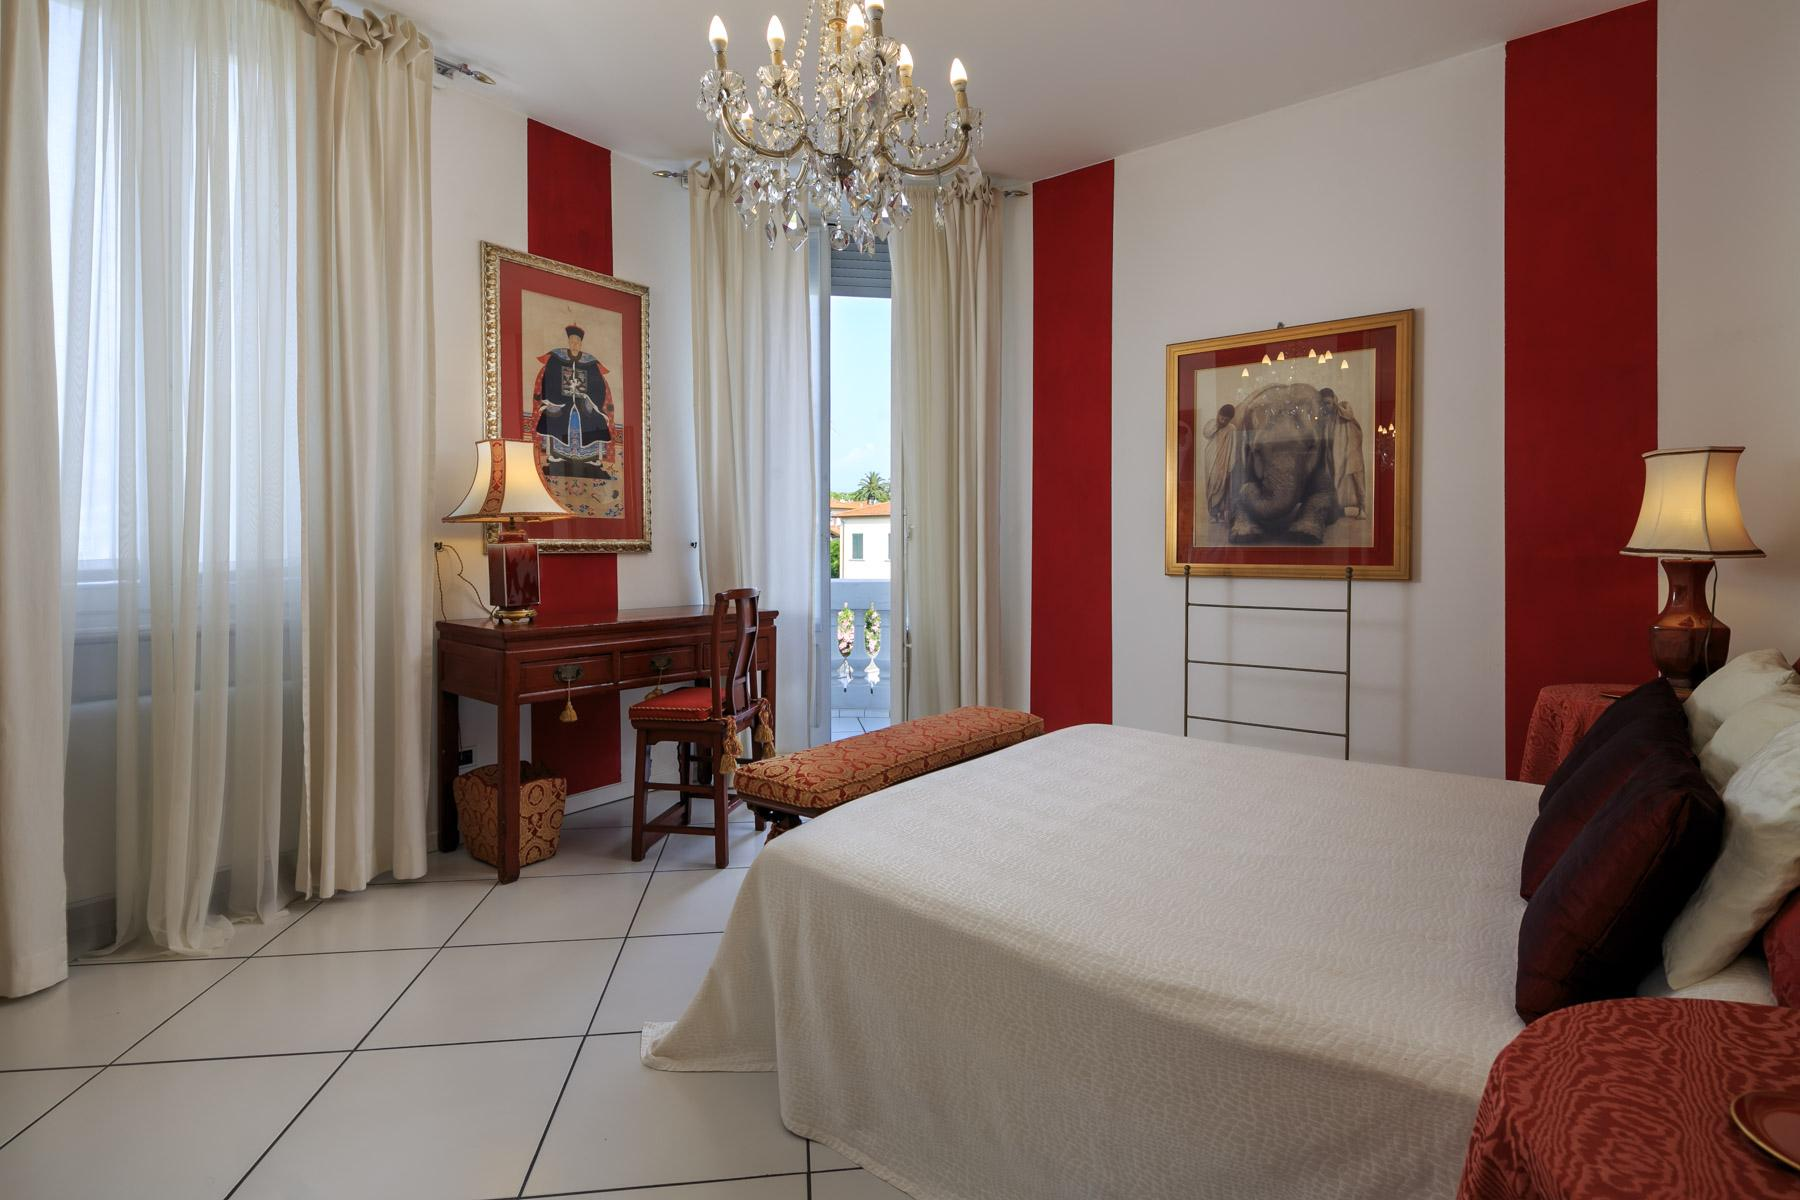 Seafront Villa with tower in Forte dei Marmi - 10